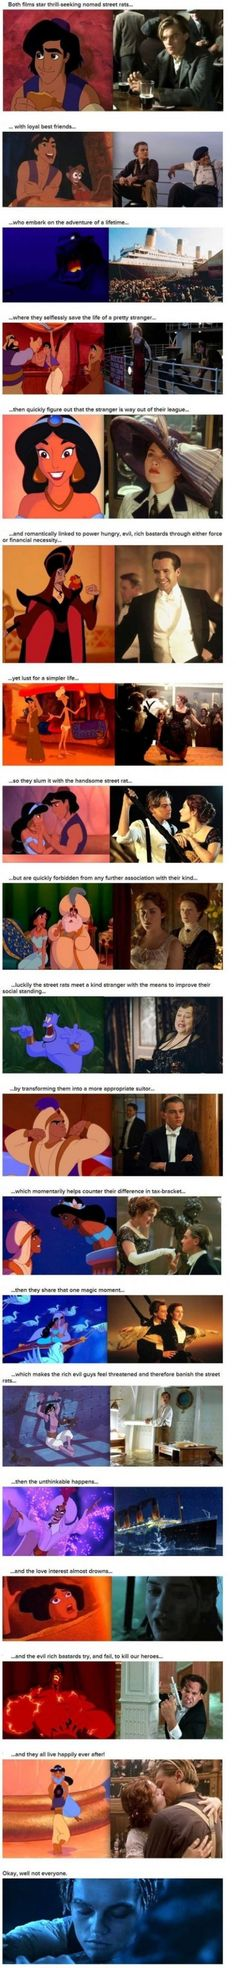 Aladdin Vs Titanic... Need to watch both of these again!